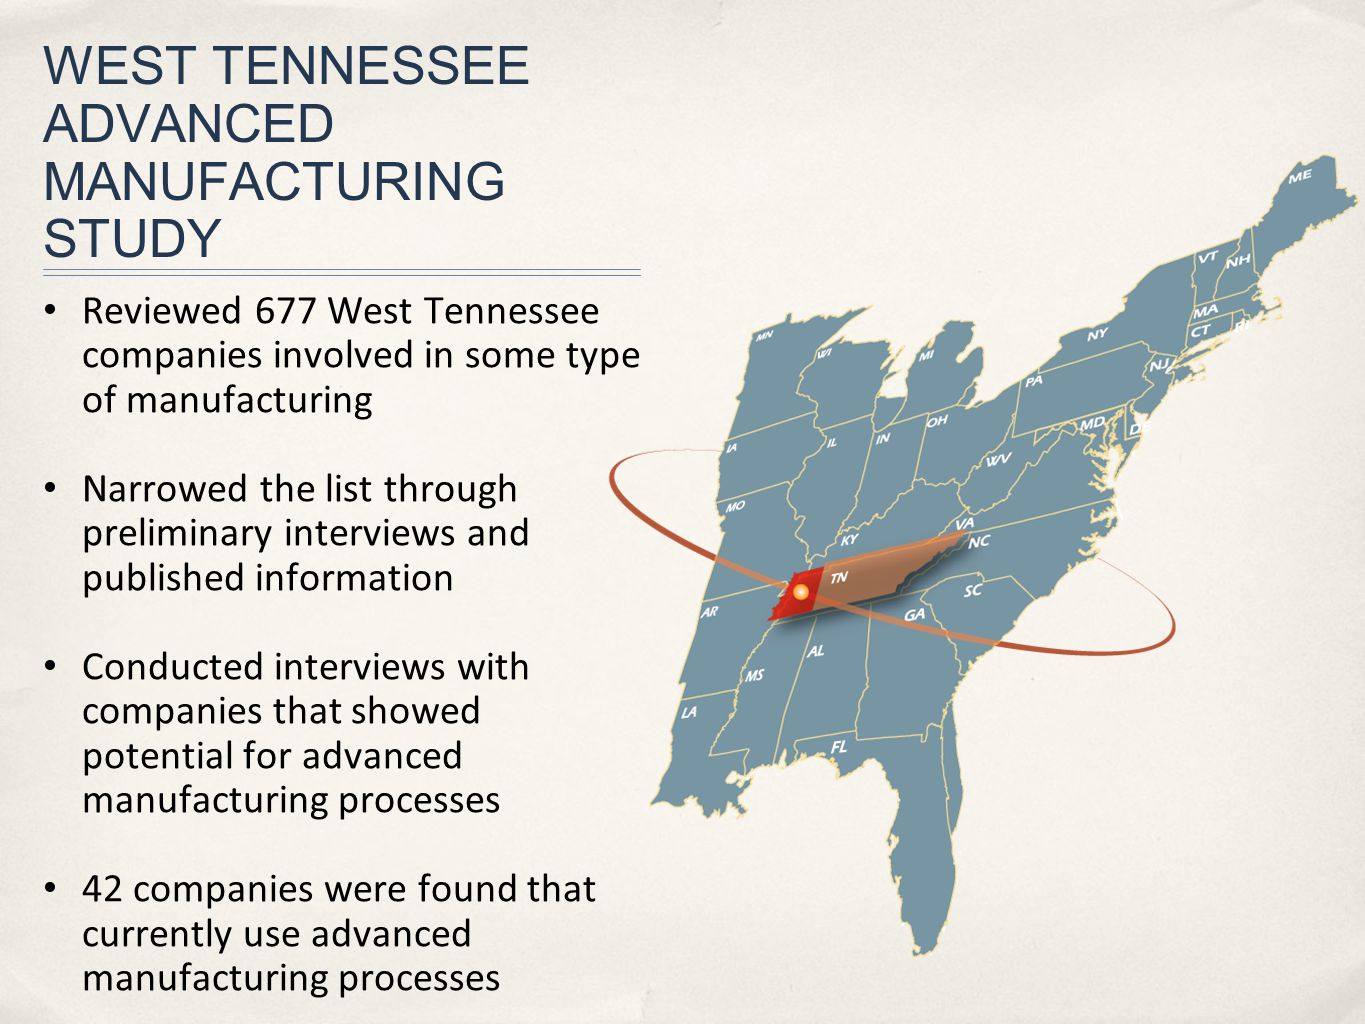 WEST TENNESSEE ADVANCED MANUFACTURING STUDY Reviewed 677 West Tennessee companies involved in some type of manufacturing Narrowed the list through preliminary interviews and published information Conducted interviews with companies that showed potential for advanced manufacturing processes 42 companies were found that currently use advanced manufacturing processes